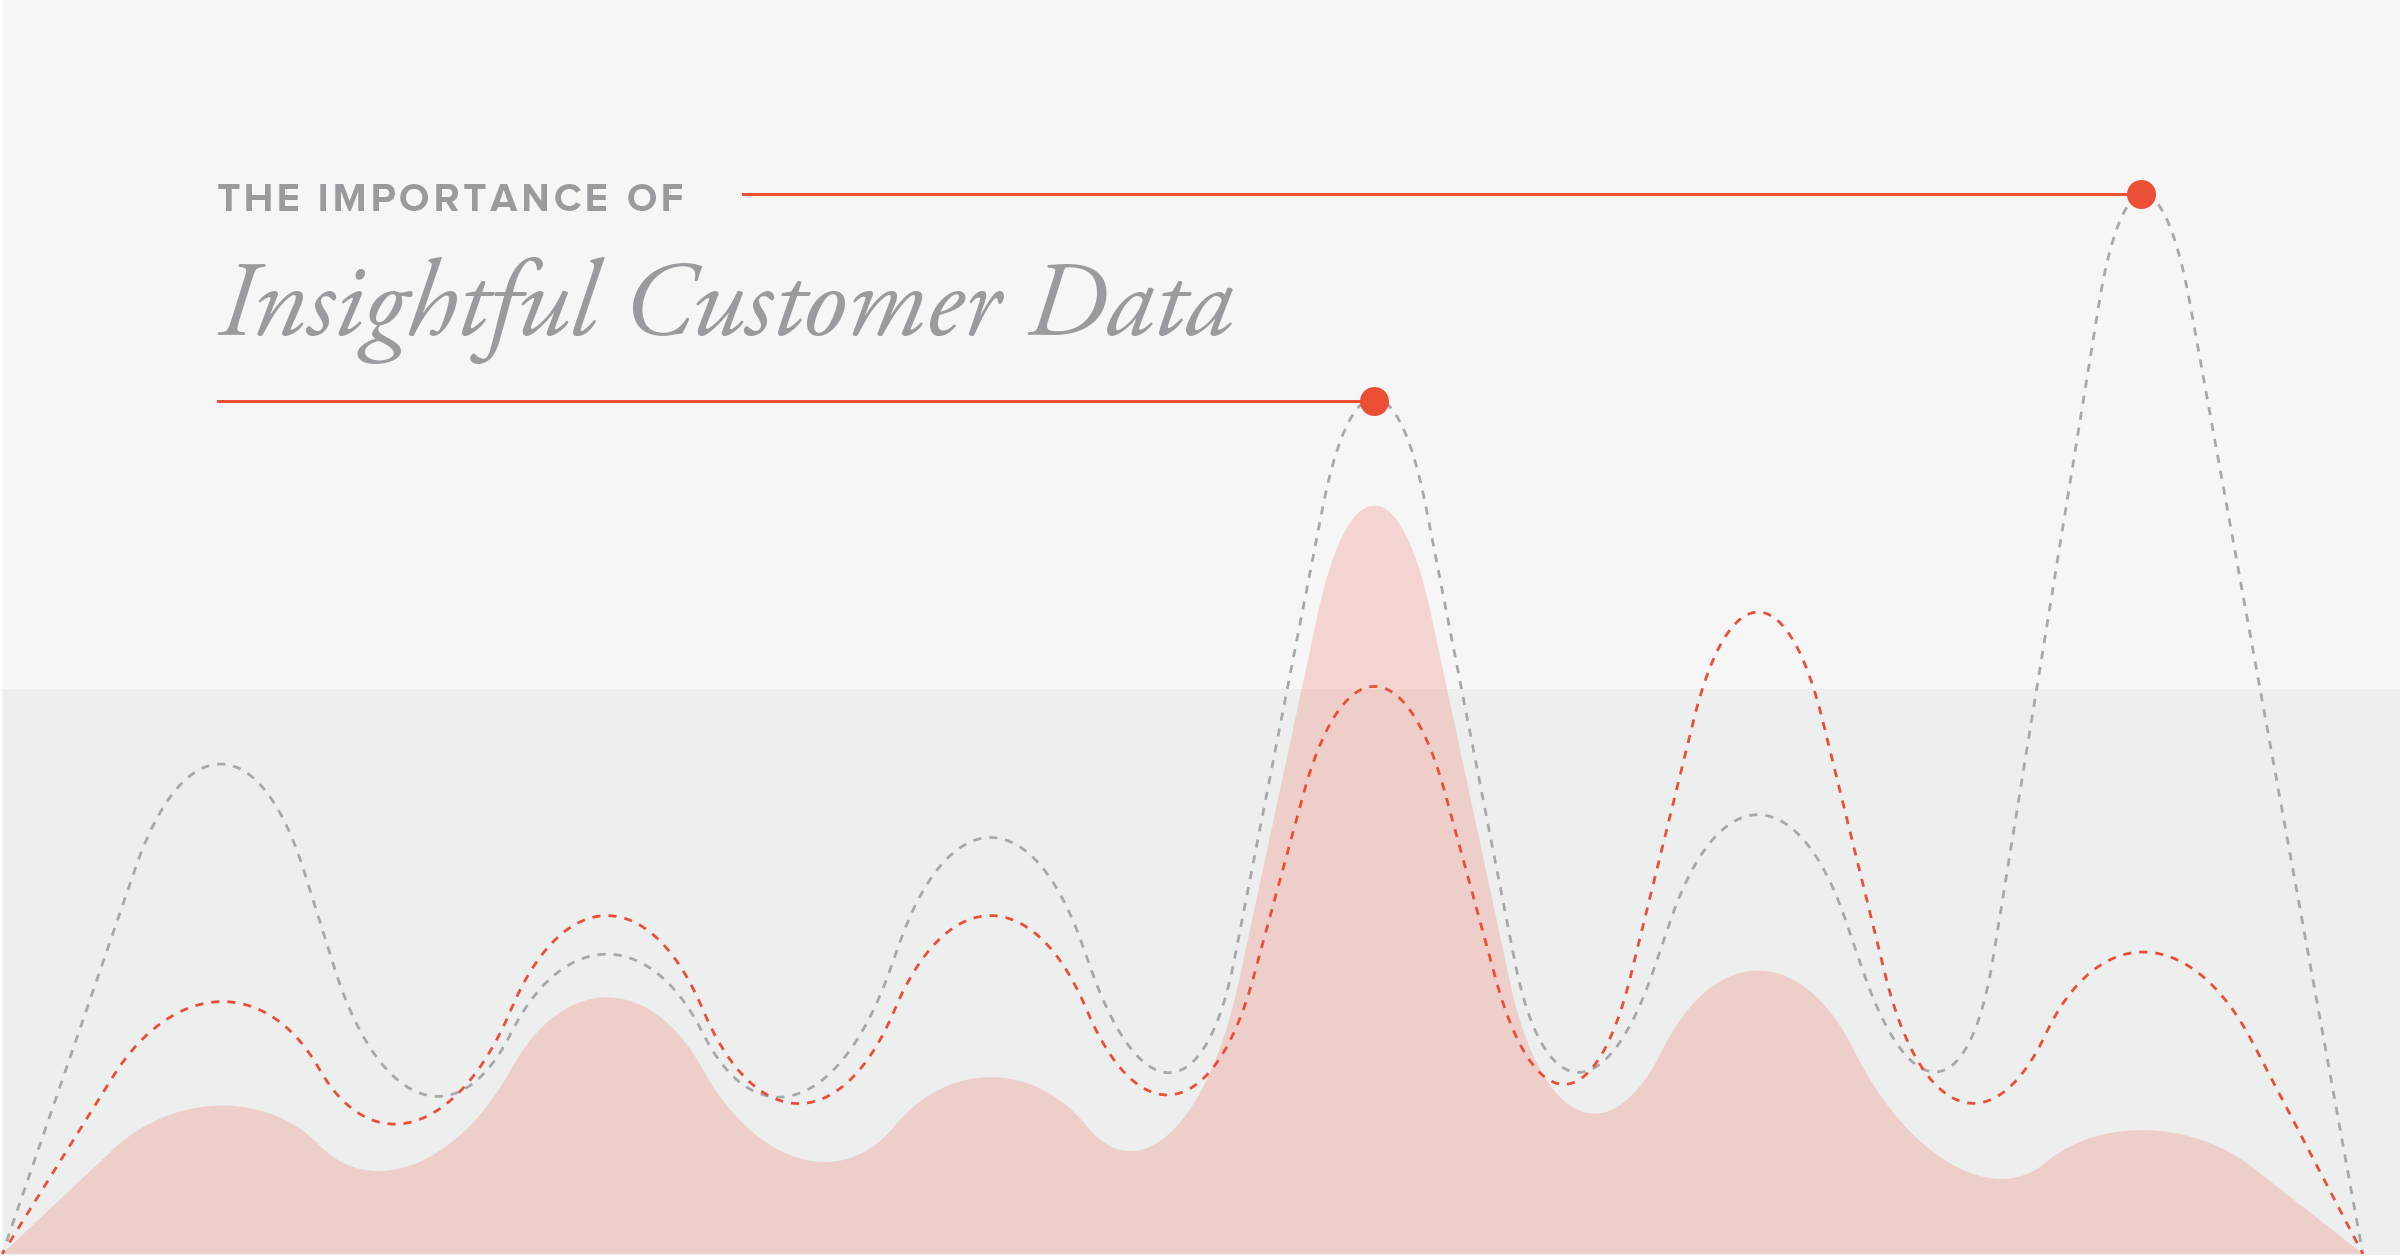 Importance-of-insightful-customer-data_thumbnail-2.png